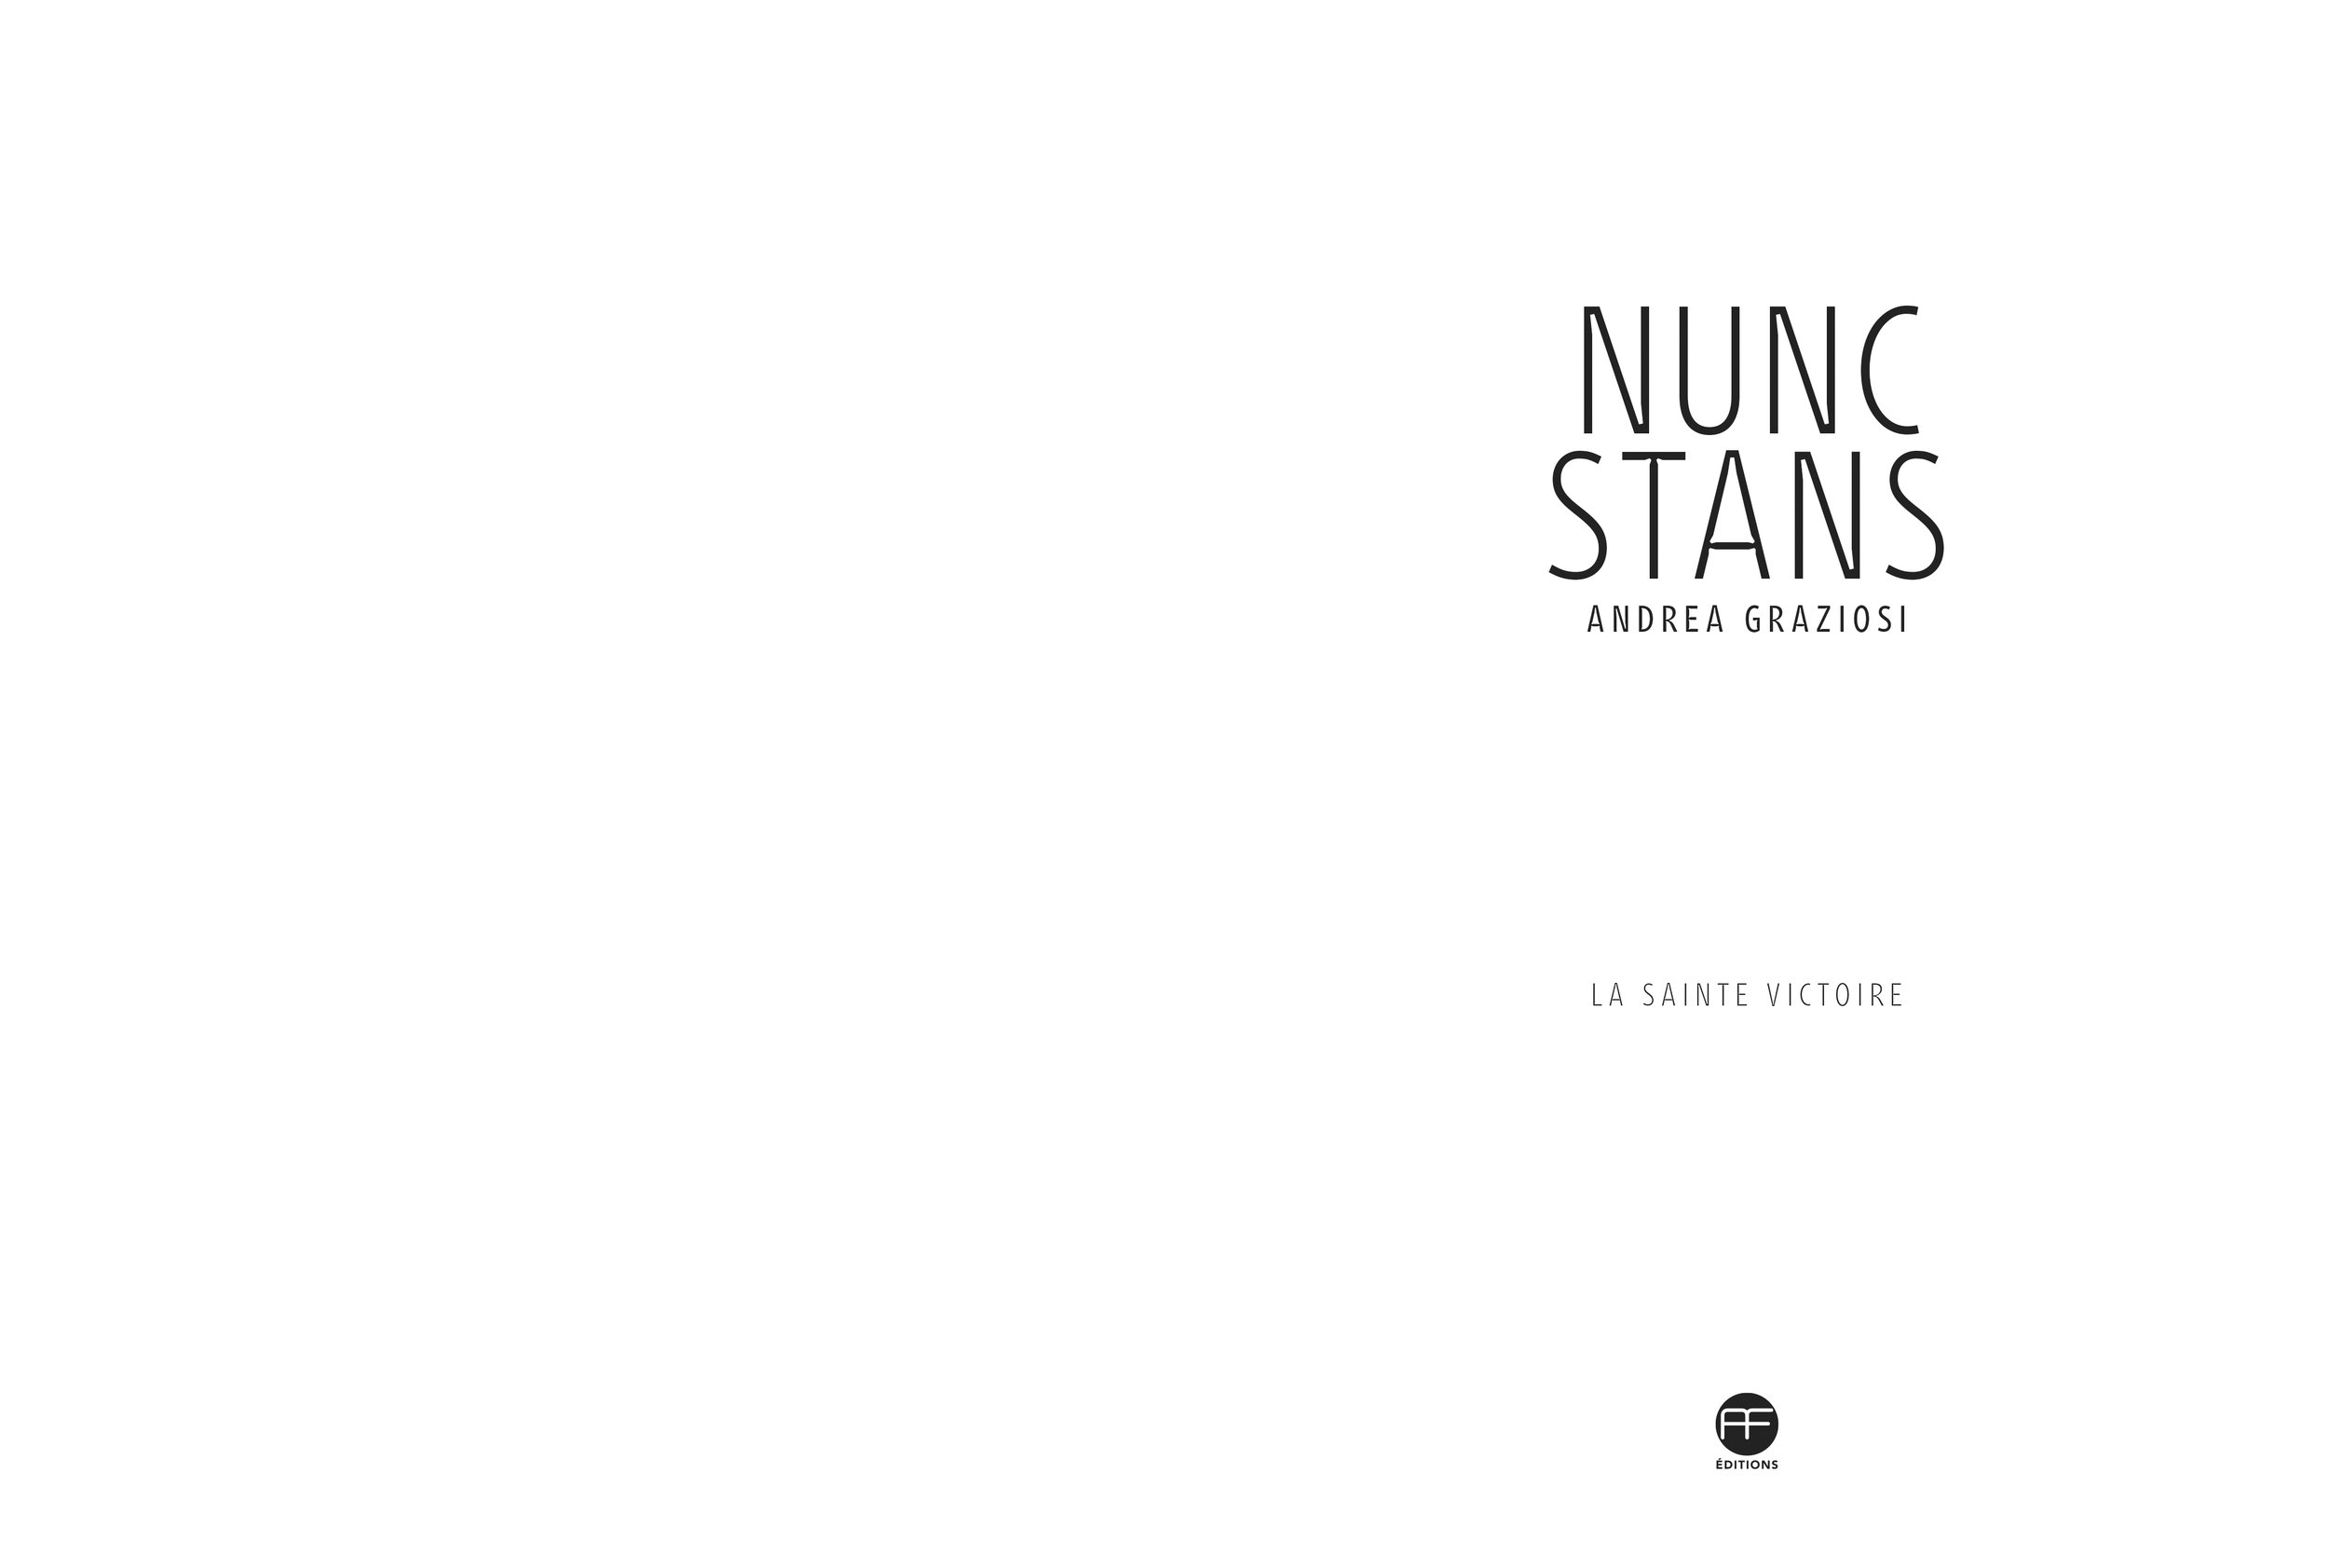 NuncStans_1_InsidePages-3.jpg